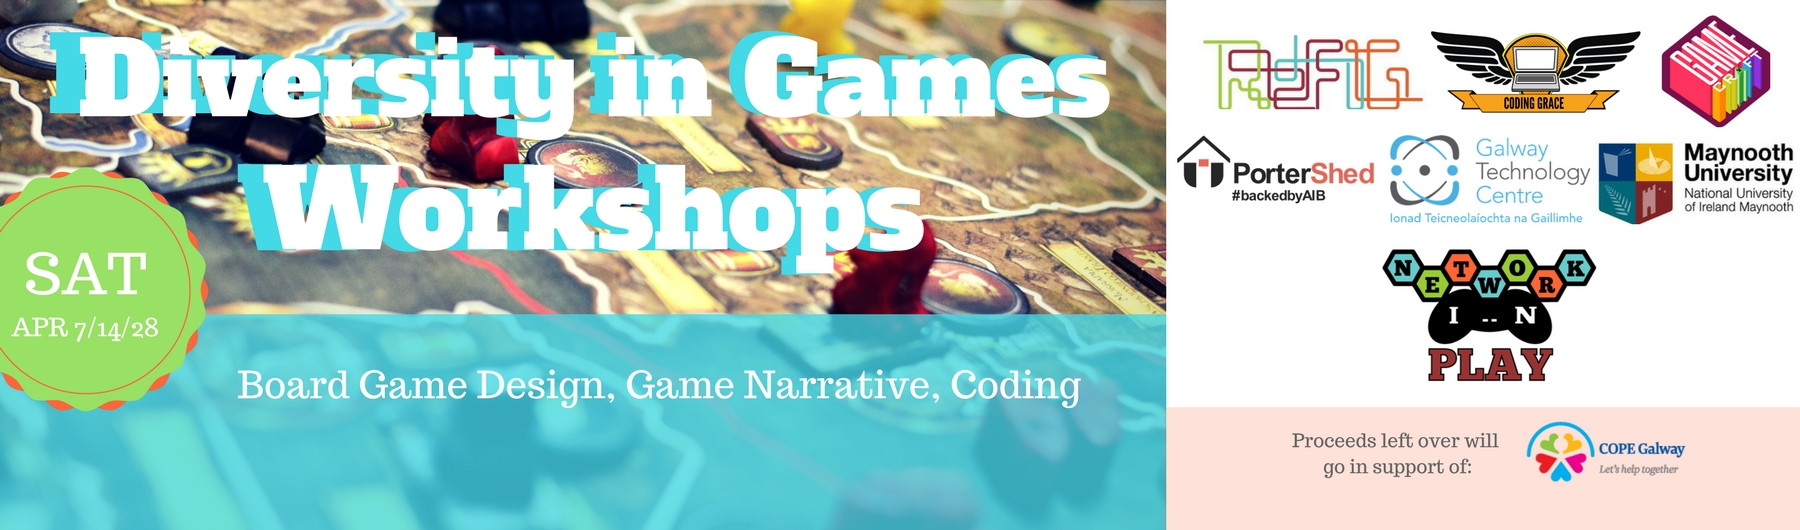 [Galway] Diversity in Games Workshops